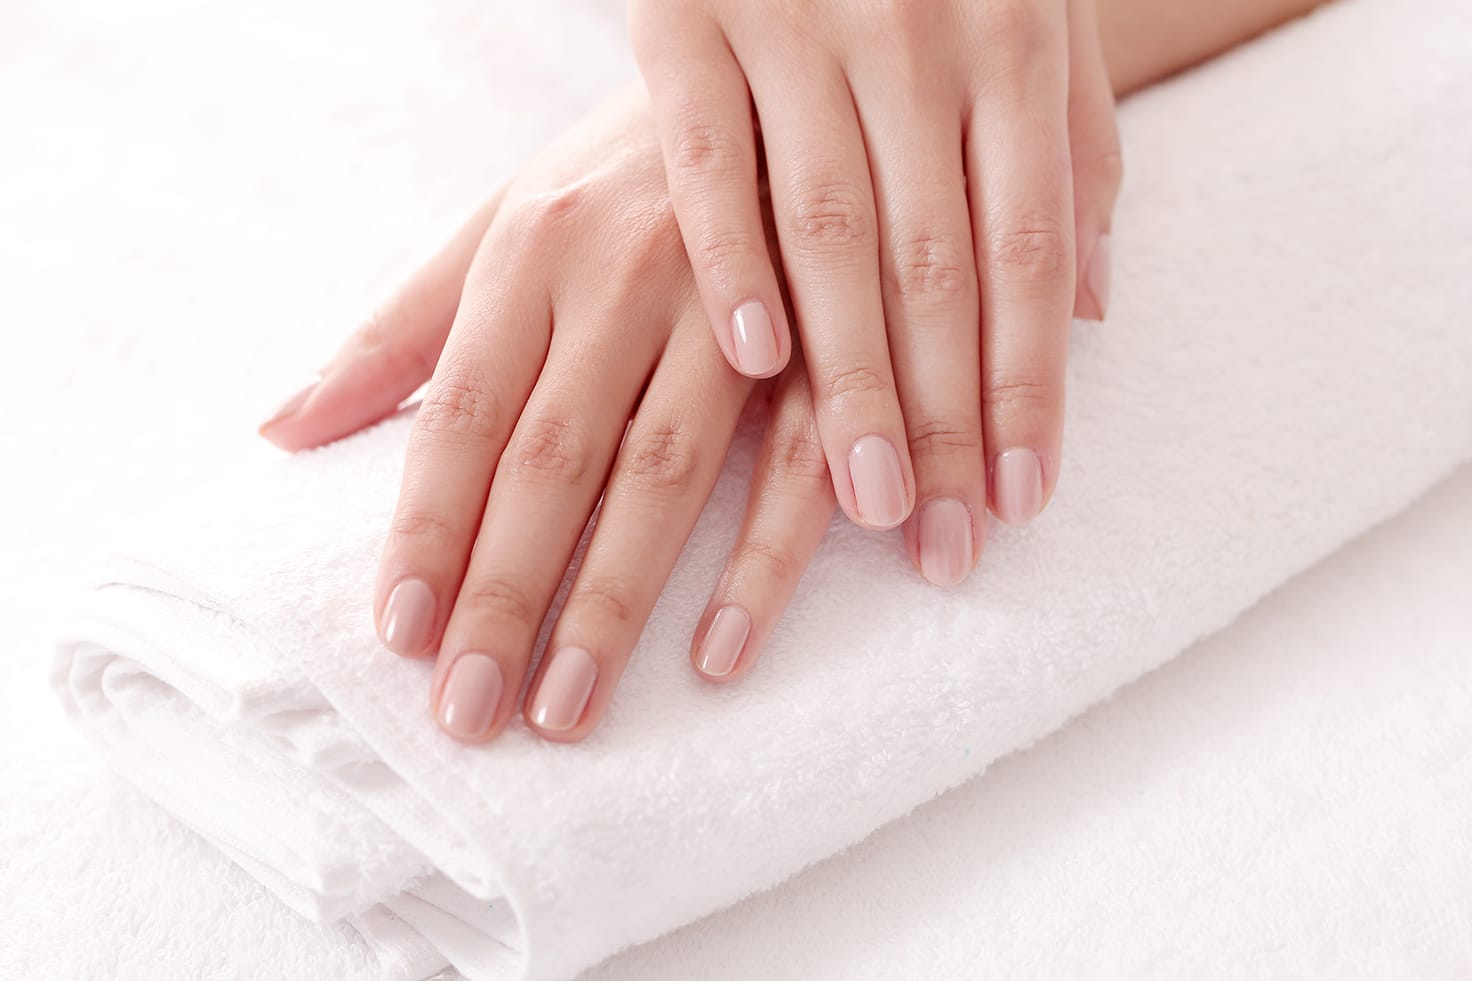 Paraffin Wax Treatments the right thing for you? Read the guide ...